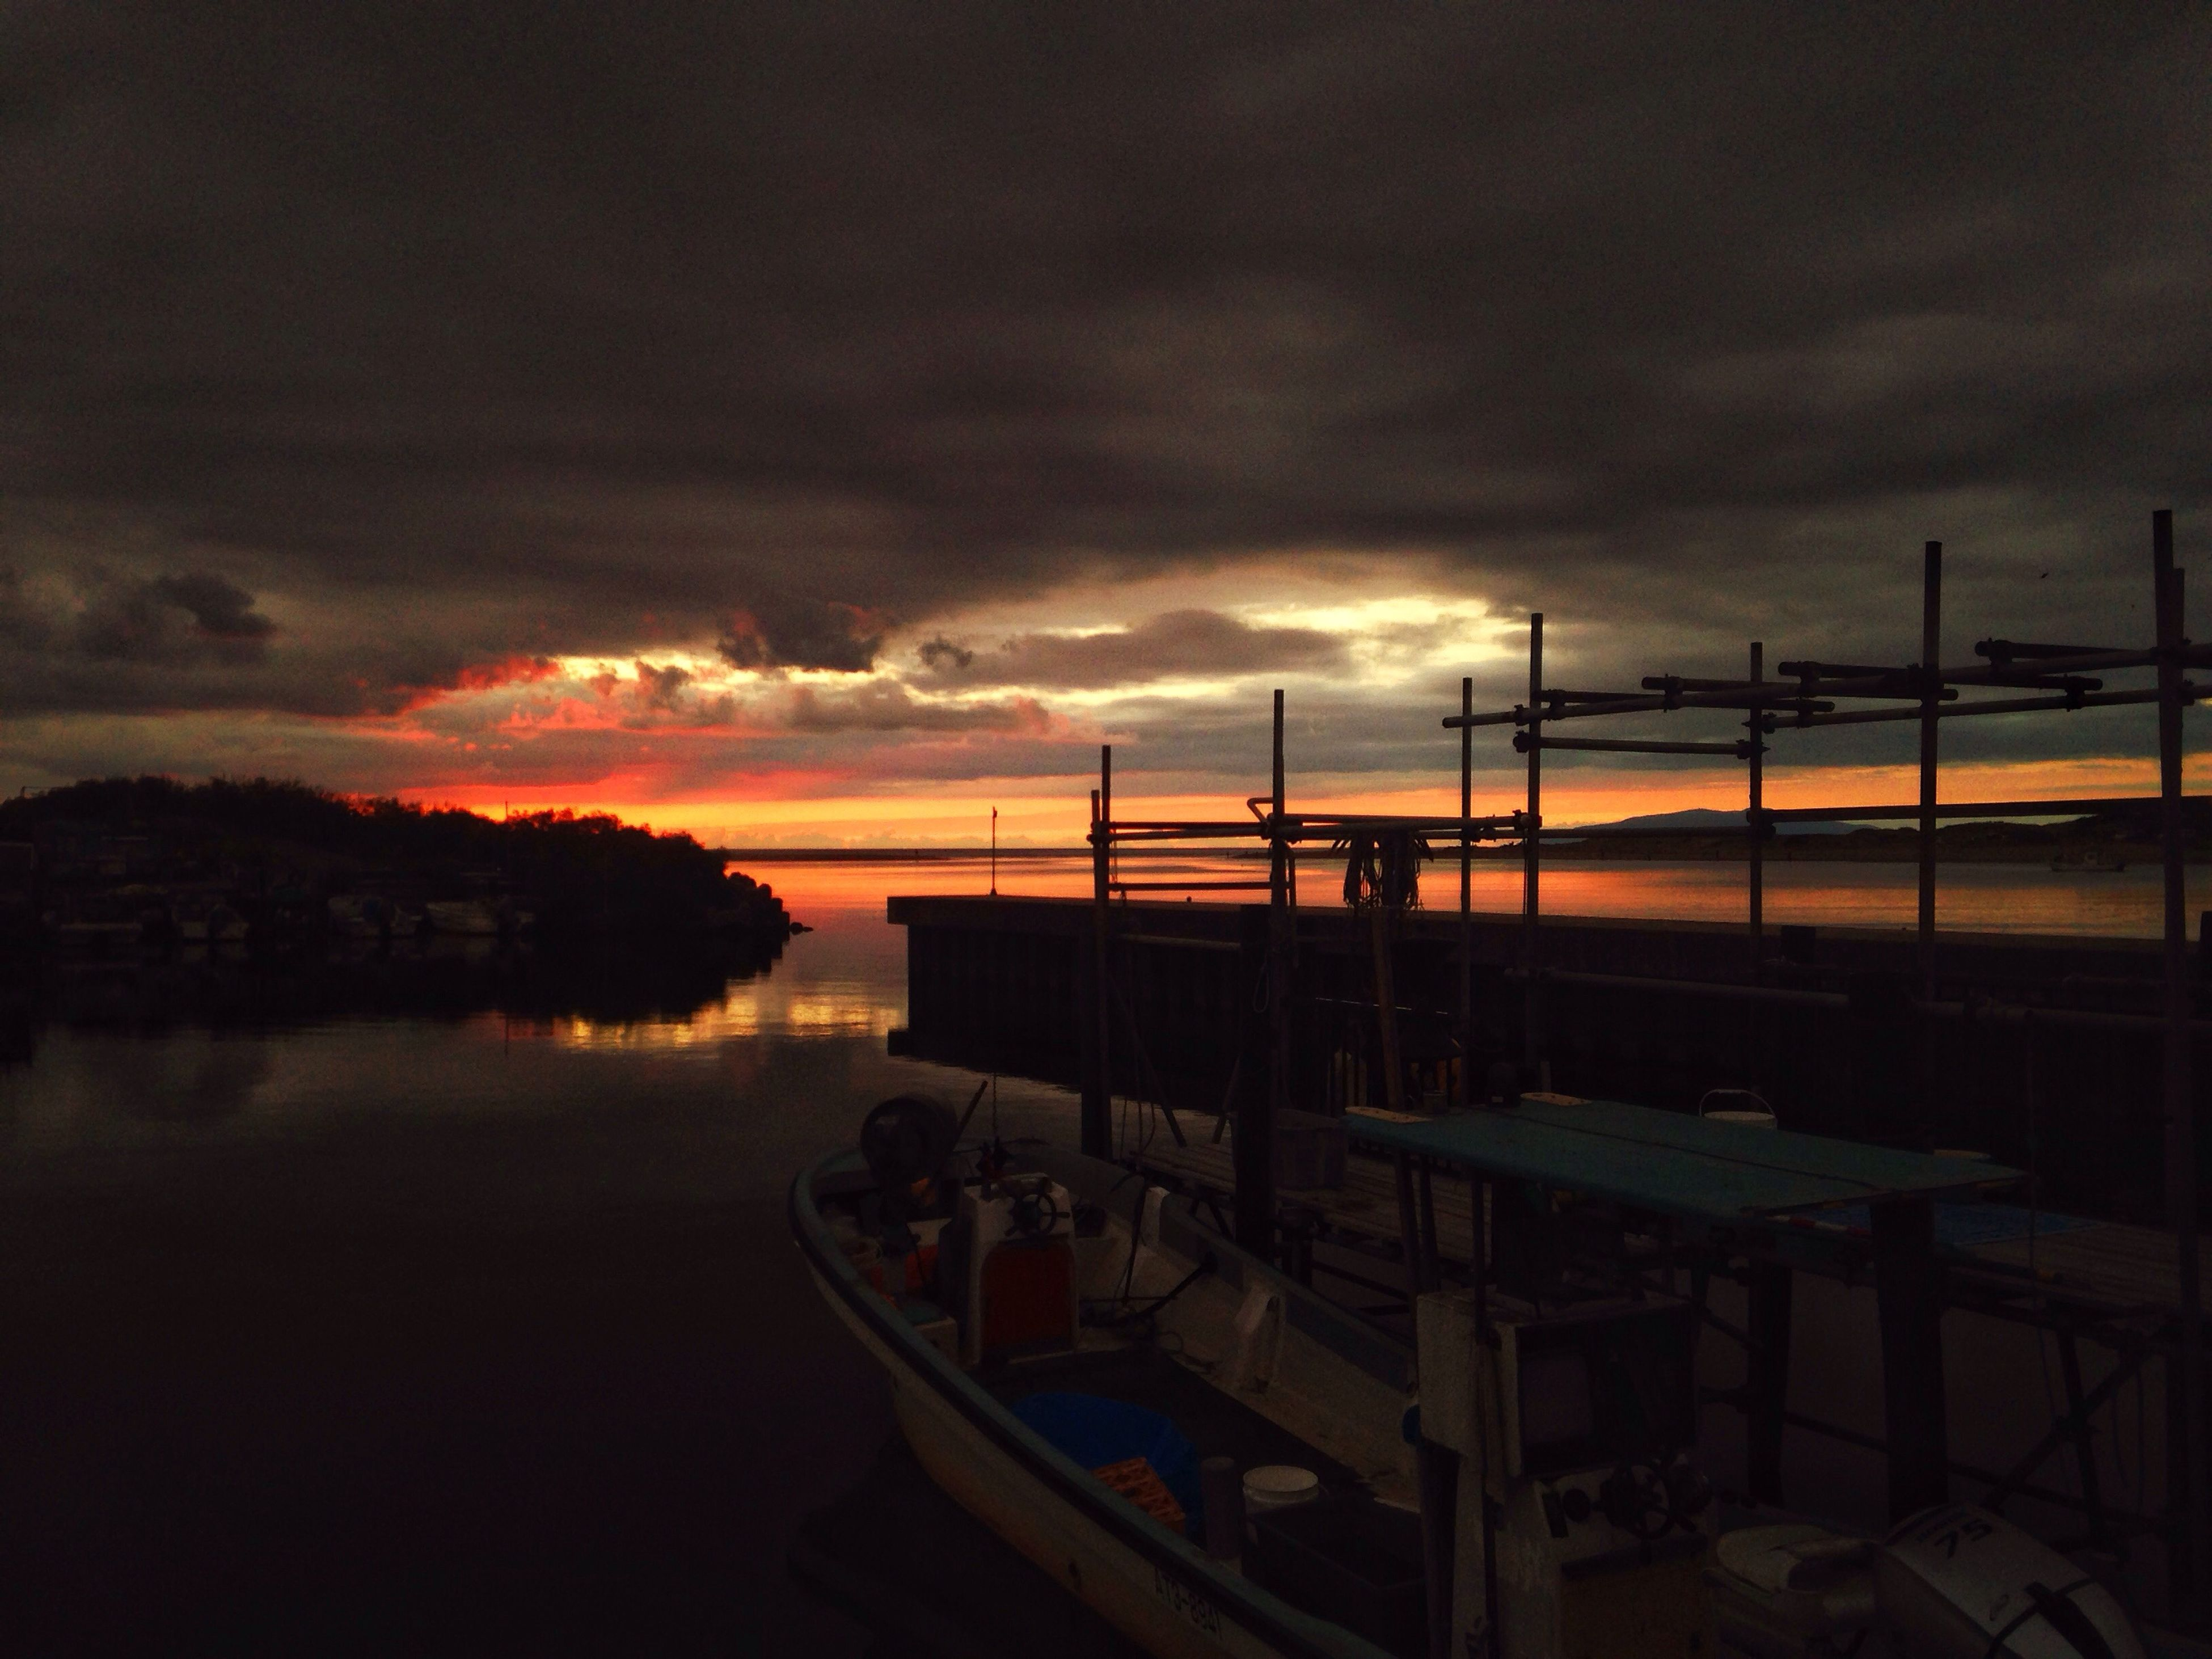 water, nautical vessel, sunset, sky, transportation, boat, cloud - sky, moored, mode of transport, cloudy, dusk, sea, harbor, nature, reflection, cloud, tranquility, tranquil scene, scenics, river